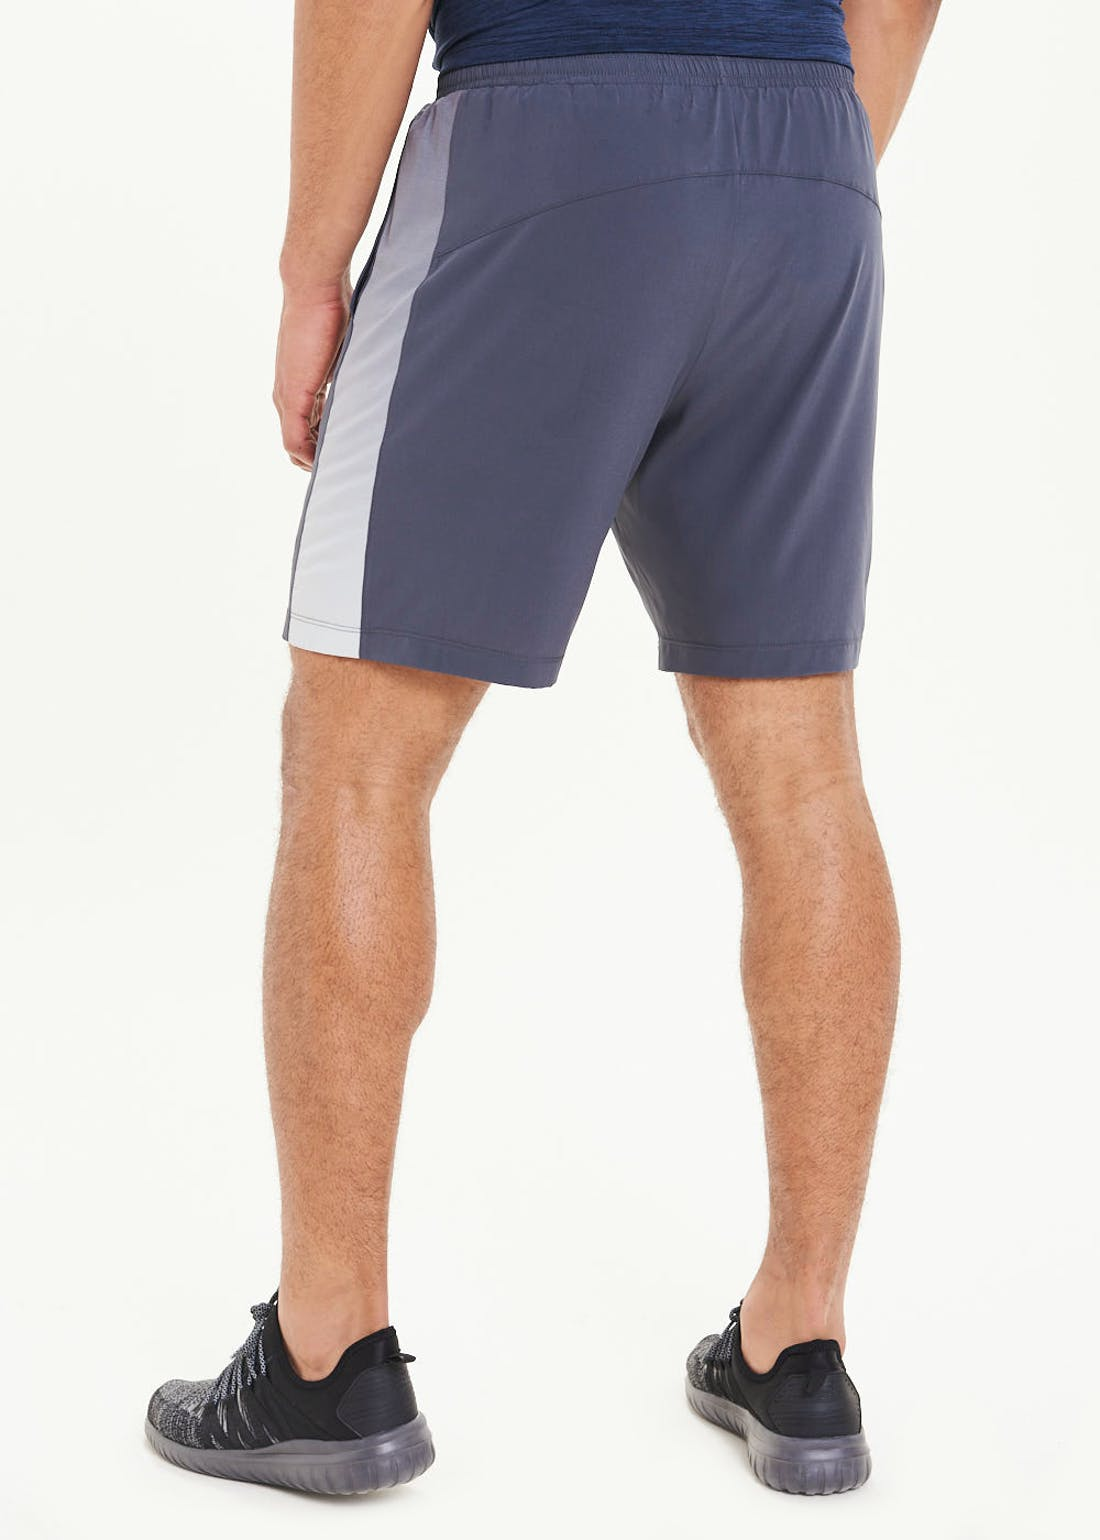 Souluxe Ombre Woven Gym Shorts